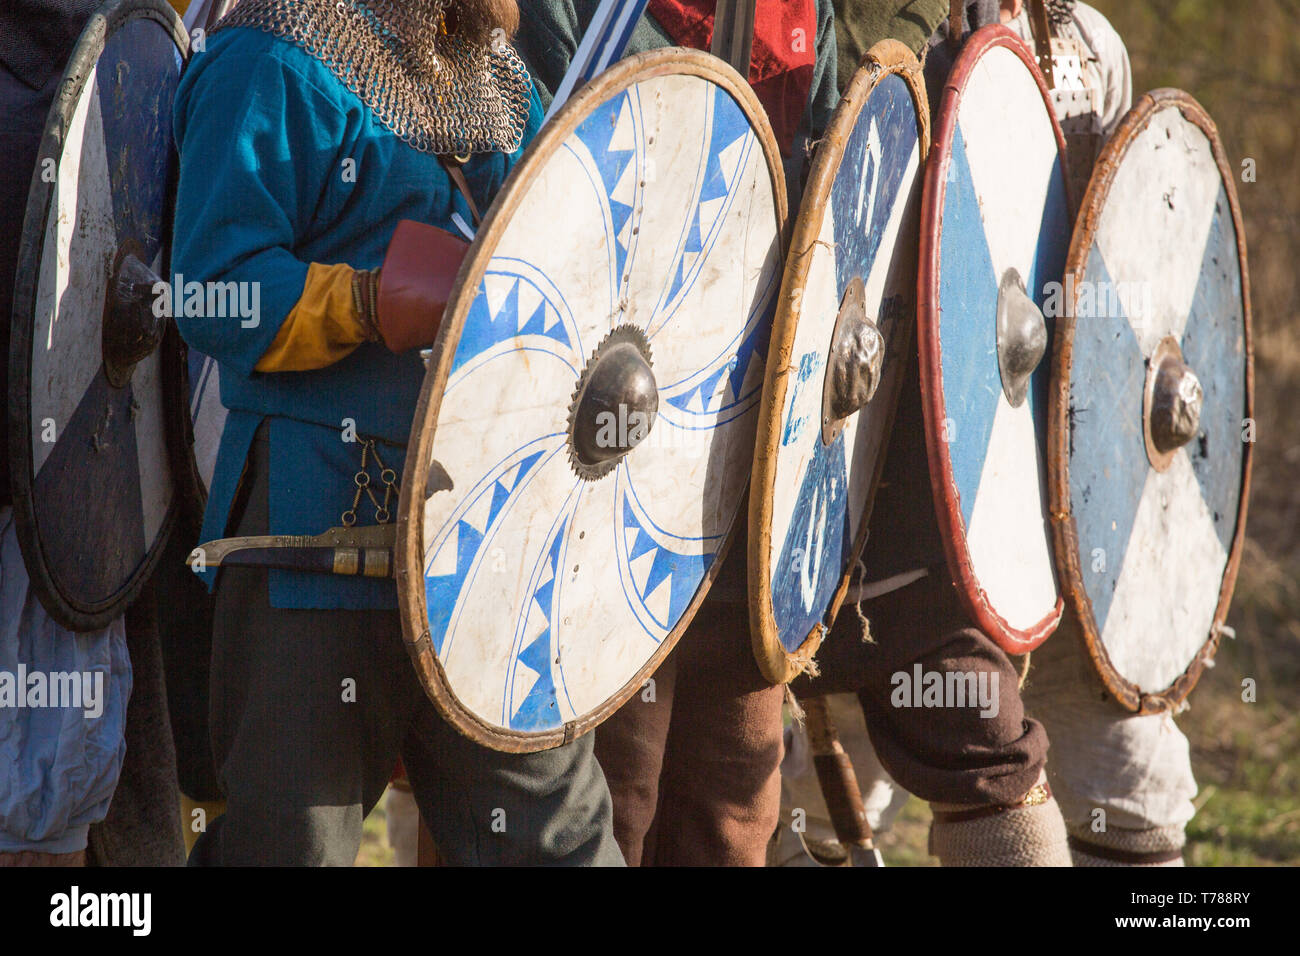 Group of slav warriors in reenactment battle rehearsal training, view on shieds - Stock Image